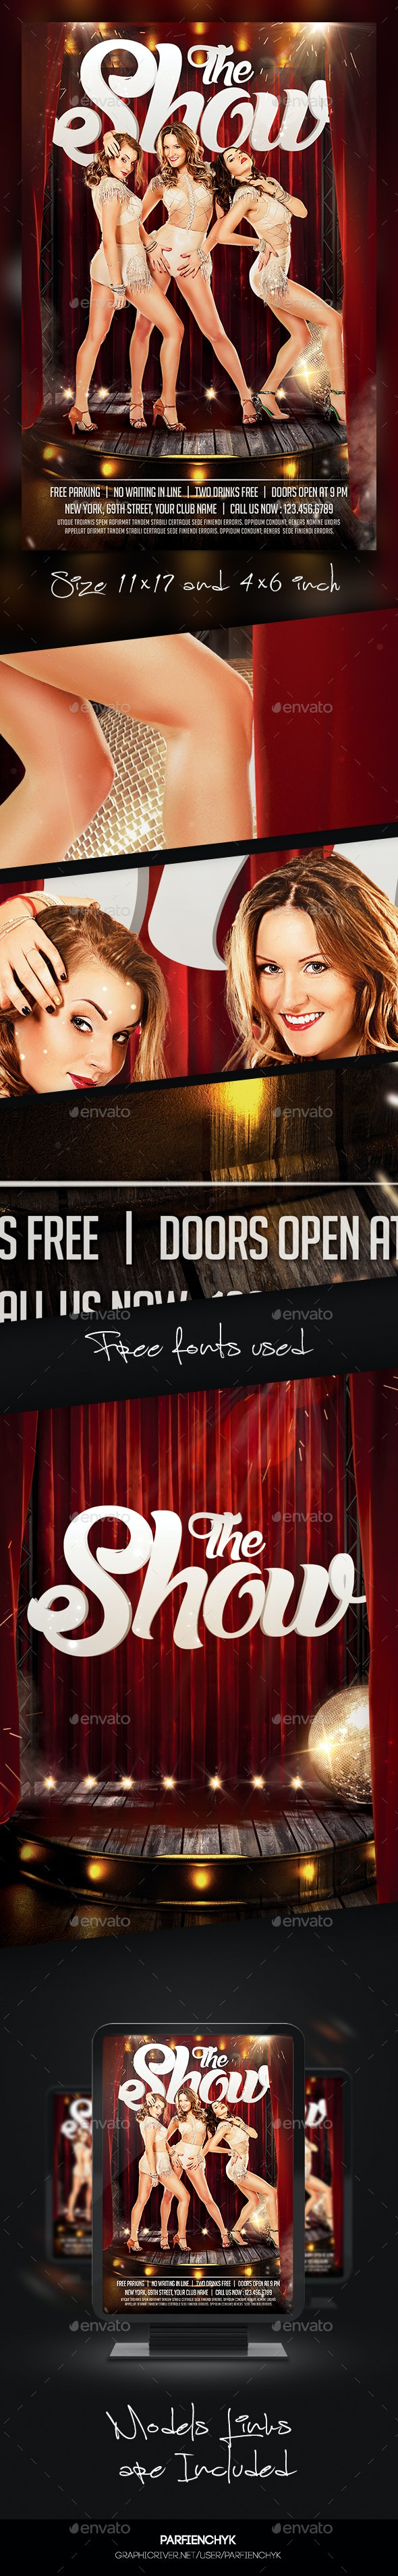 The Show Flyer Template - Clubs & Parties Events